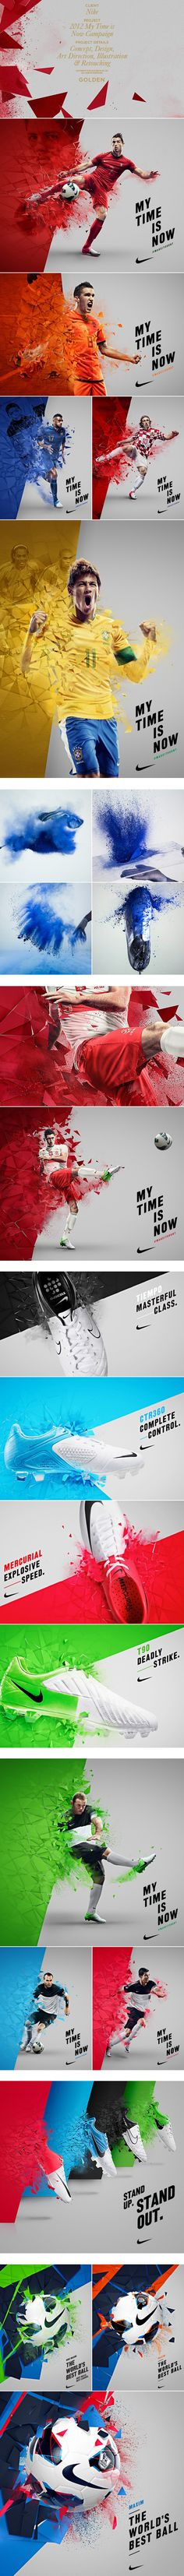 Nike 2012 My Time Is Now Campaign http://1502983.talkfusion.com/product/connect/